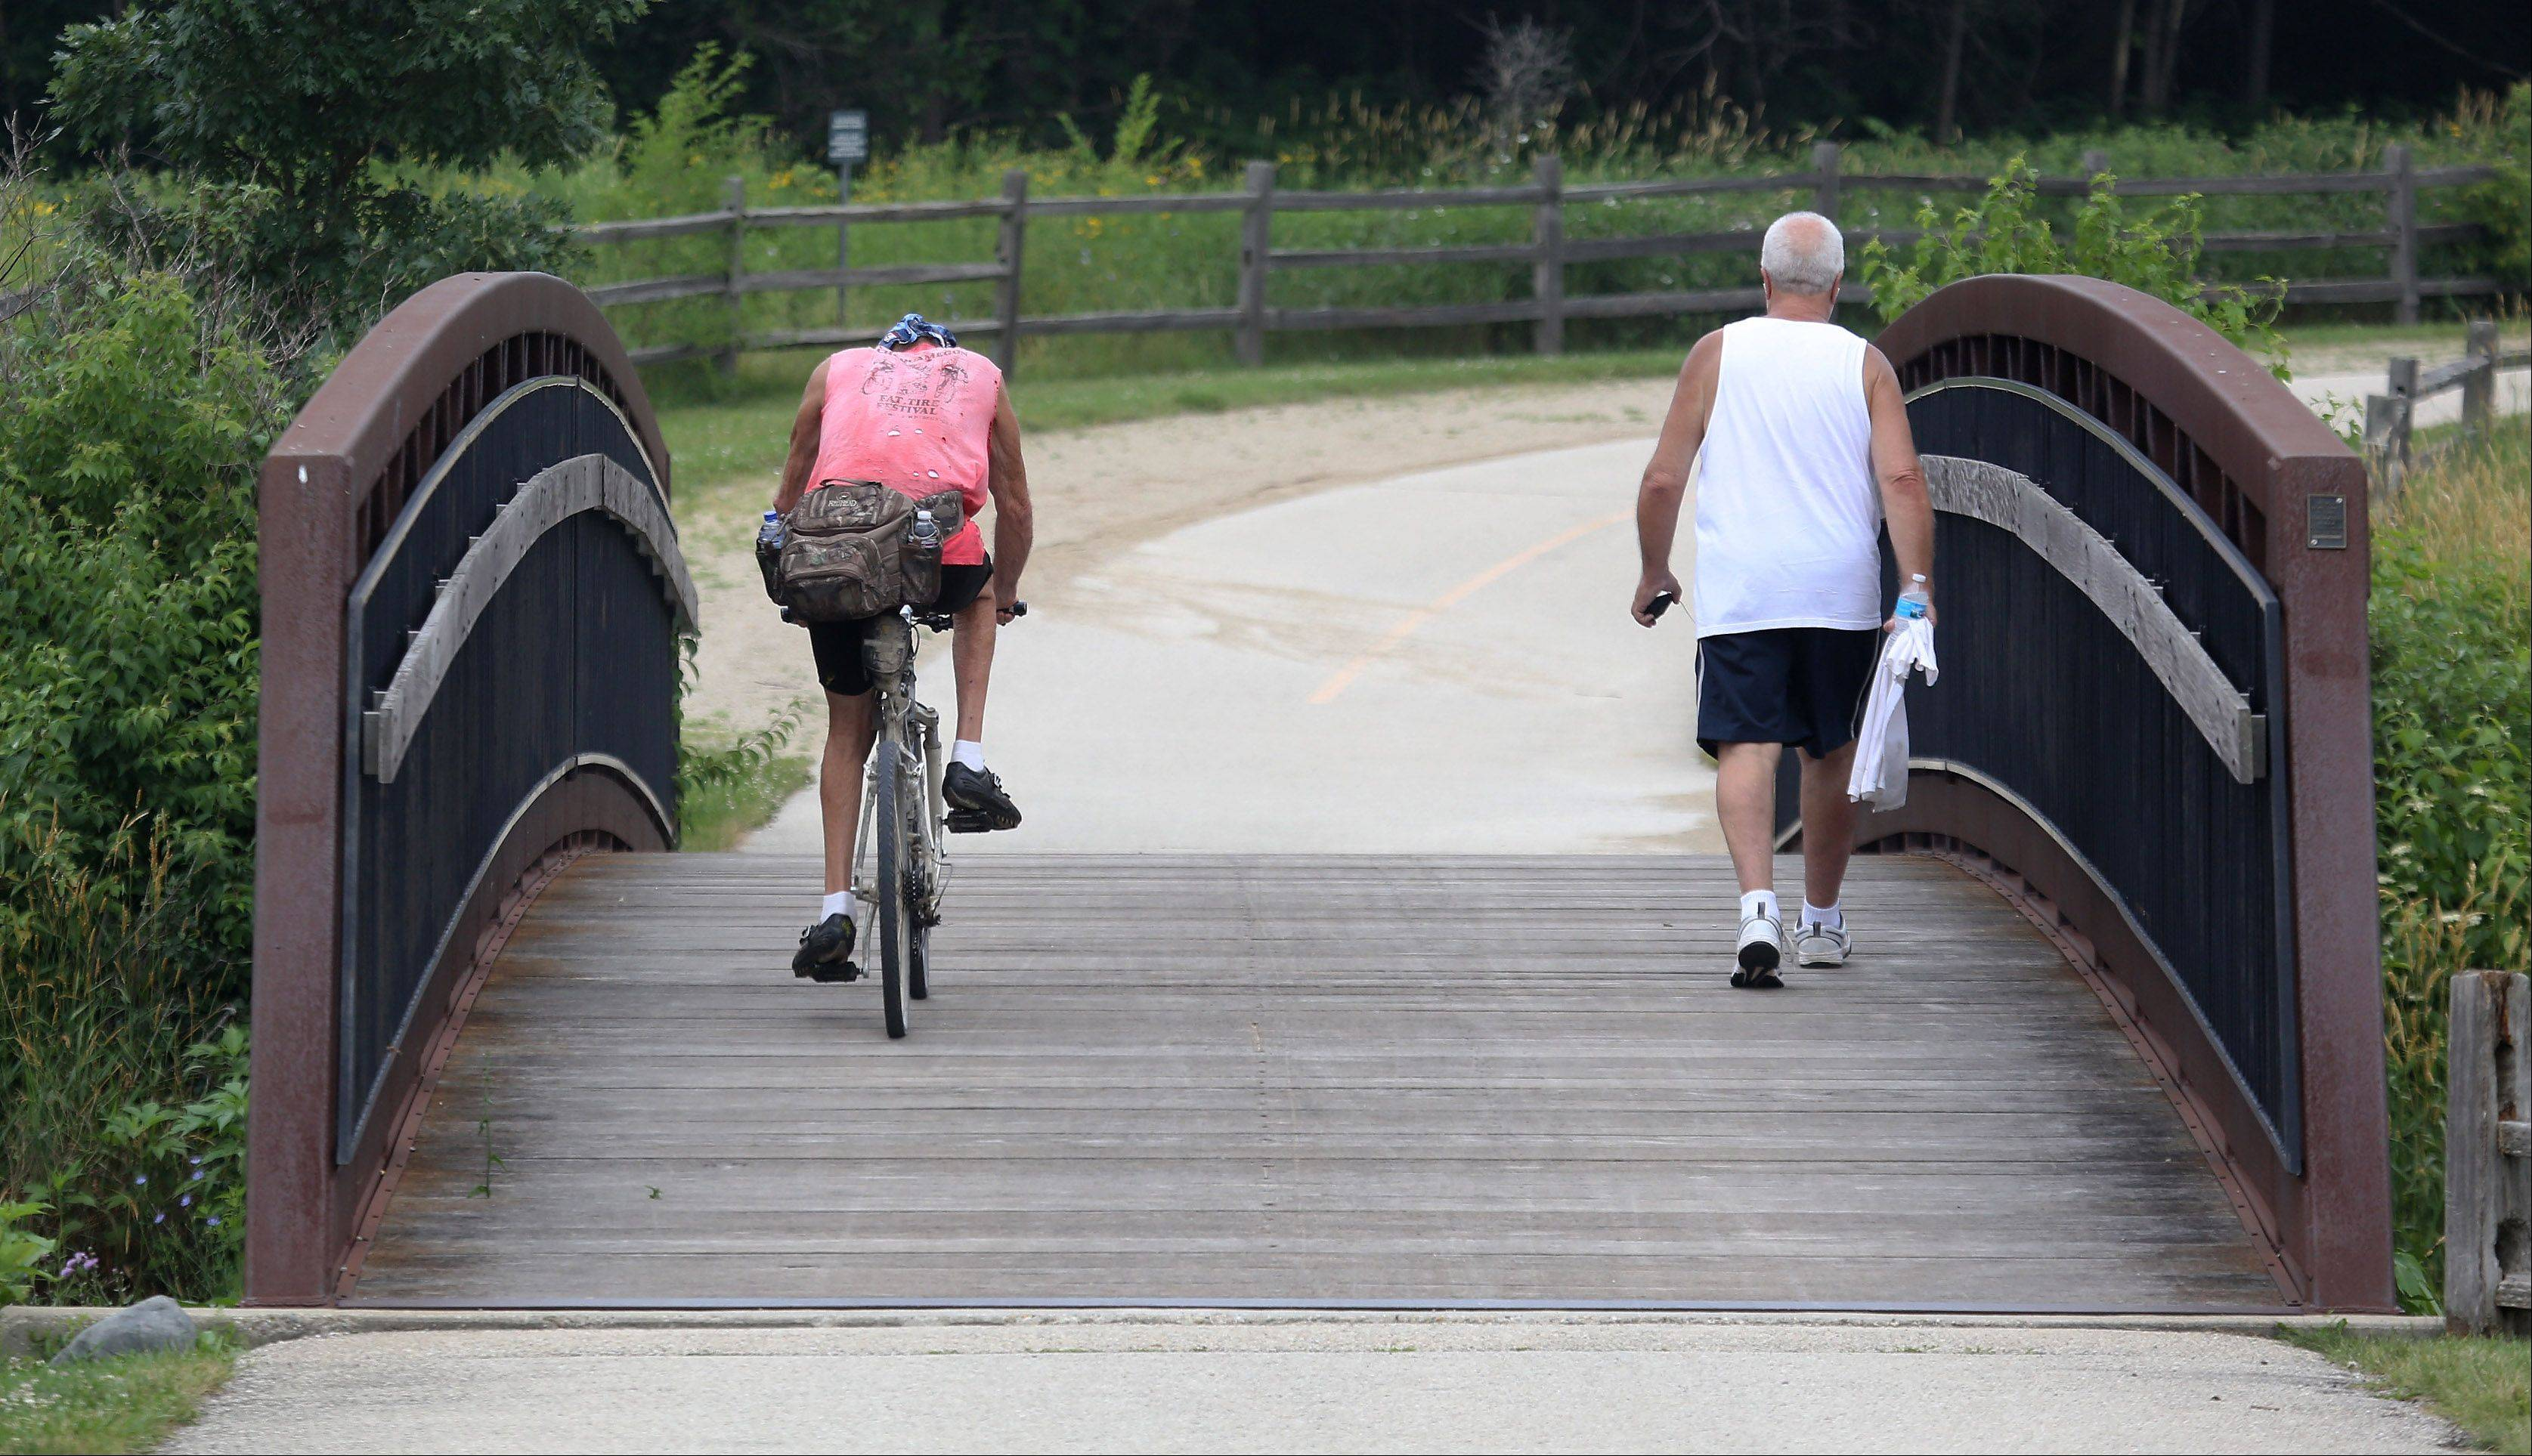 Bicyclists and walkers share the paths Tuesday in Independence Grove Forest Preserve near Libertyville.